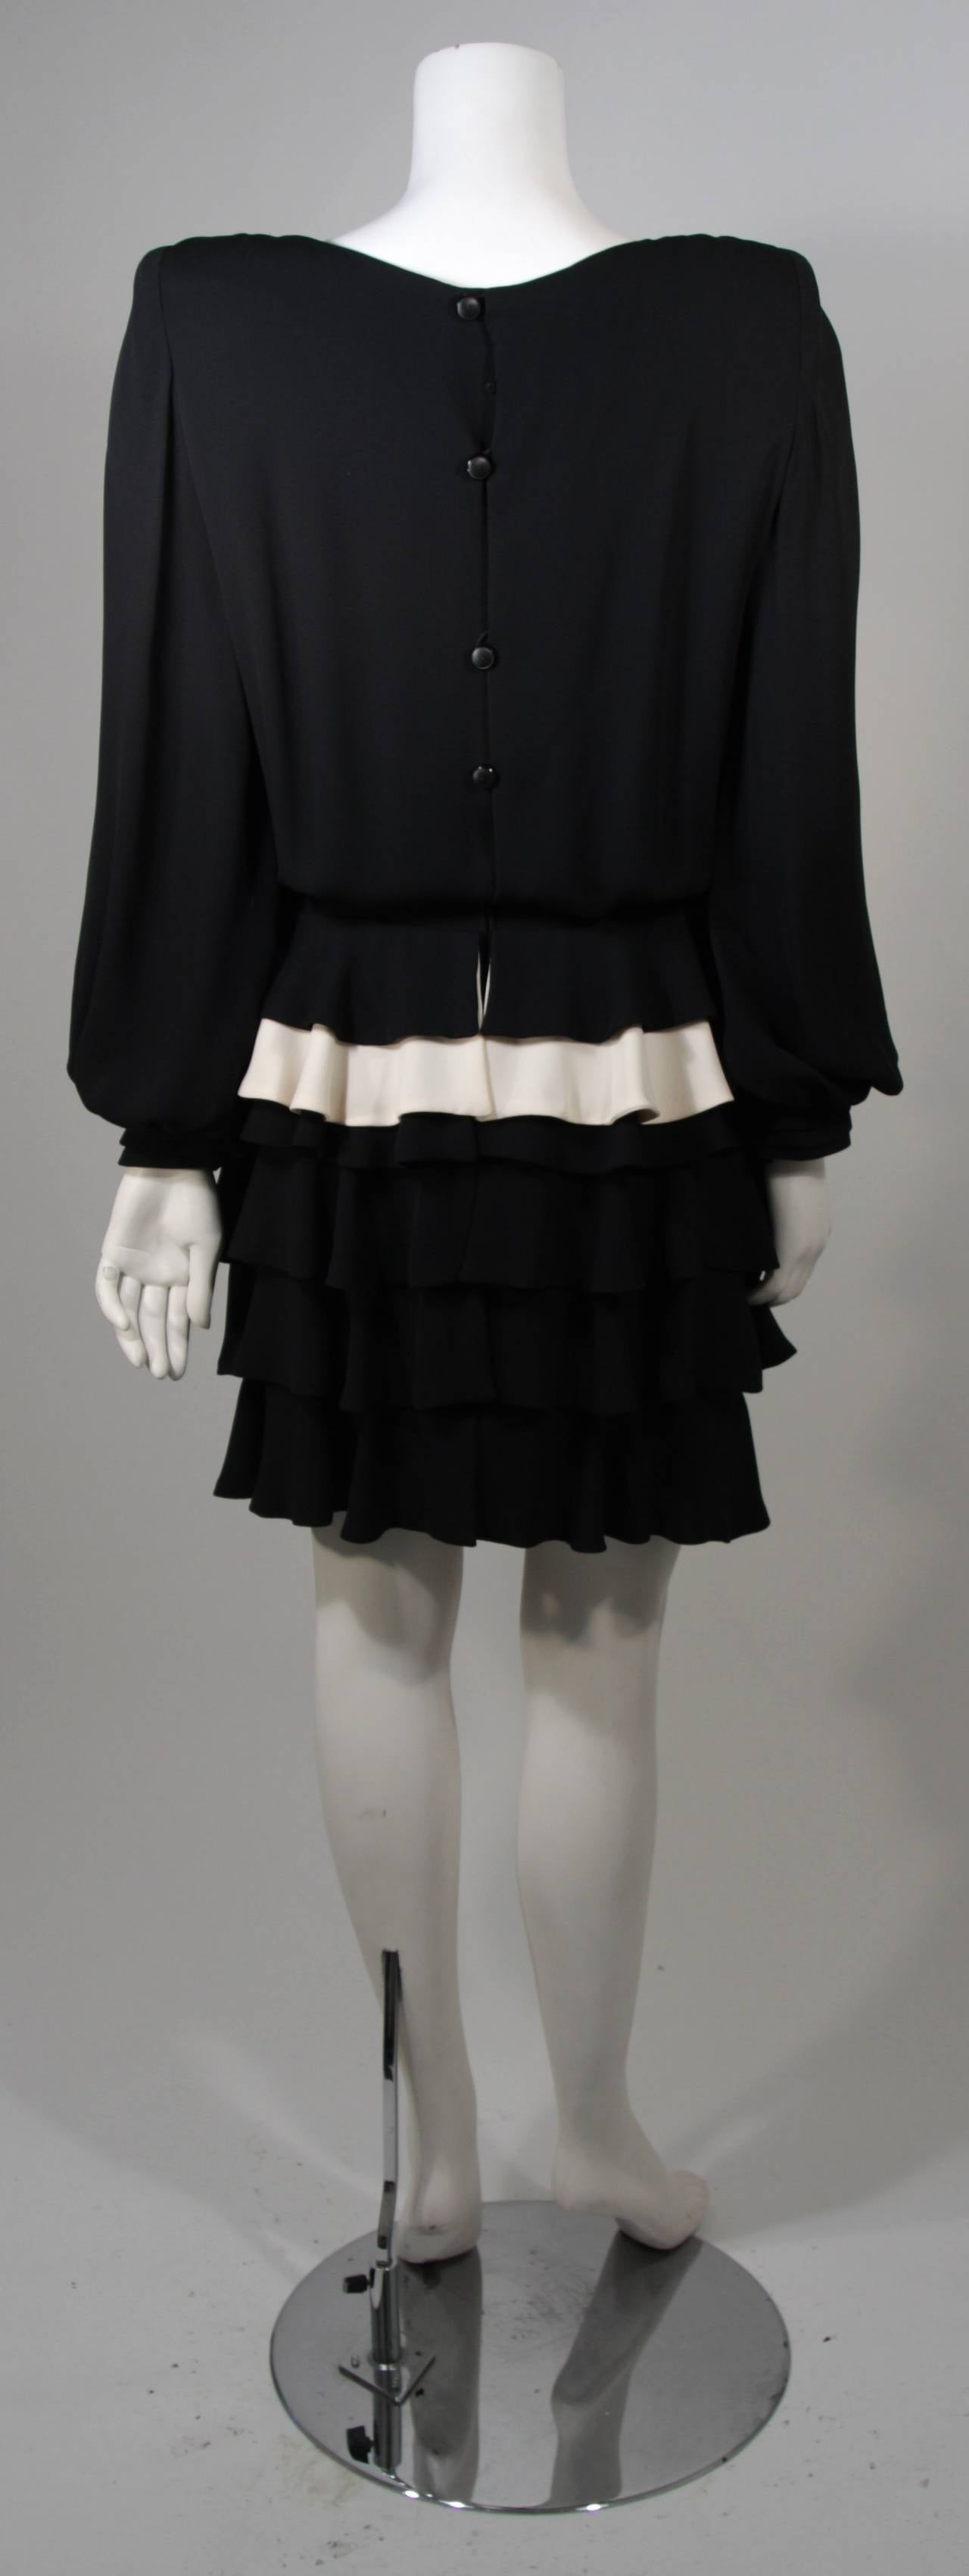 Galanos Black and Cream Ruffled Cocktail Dress with Dramatic Neckline Size 2 9